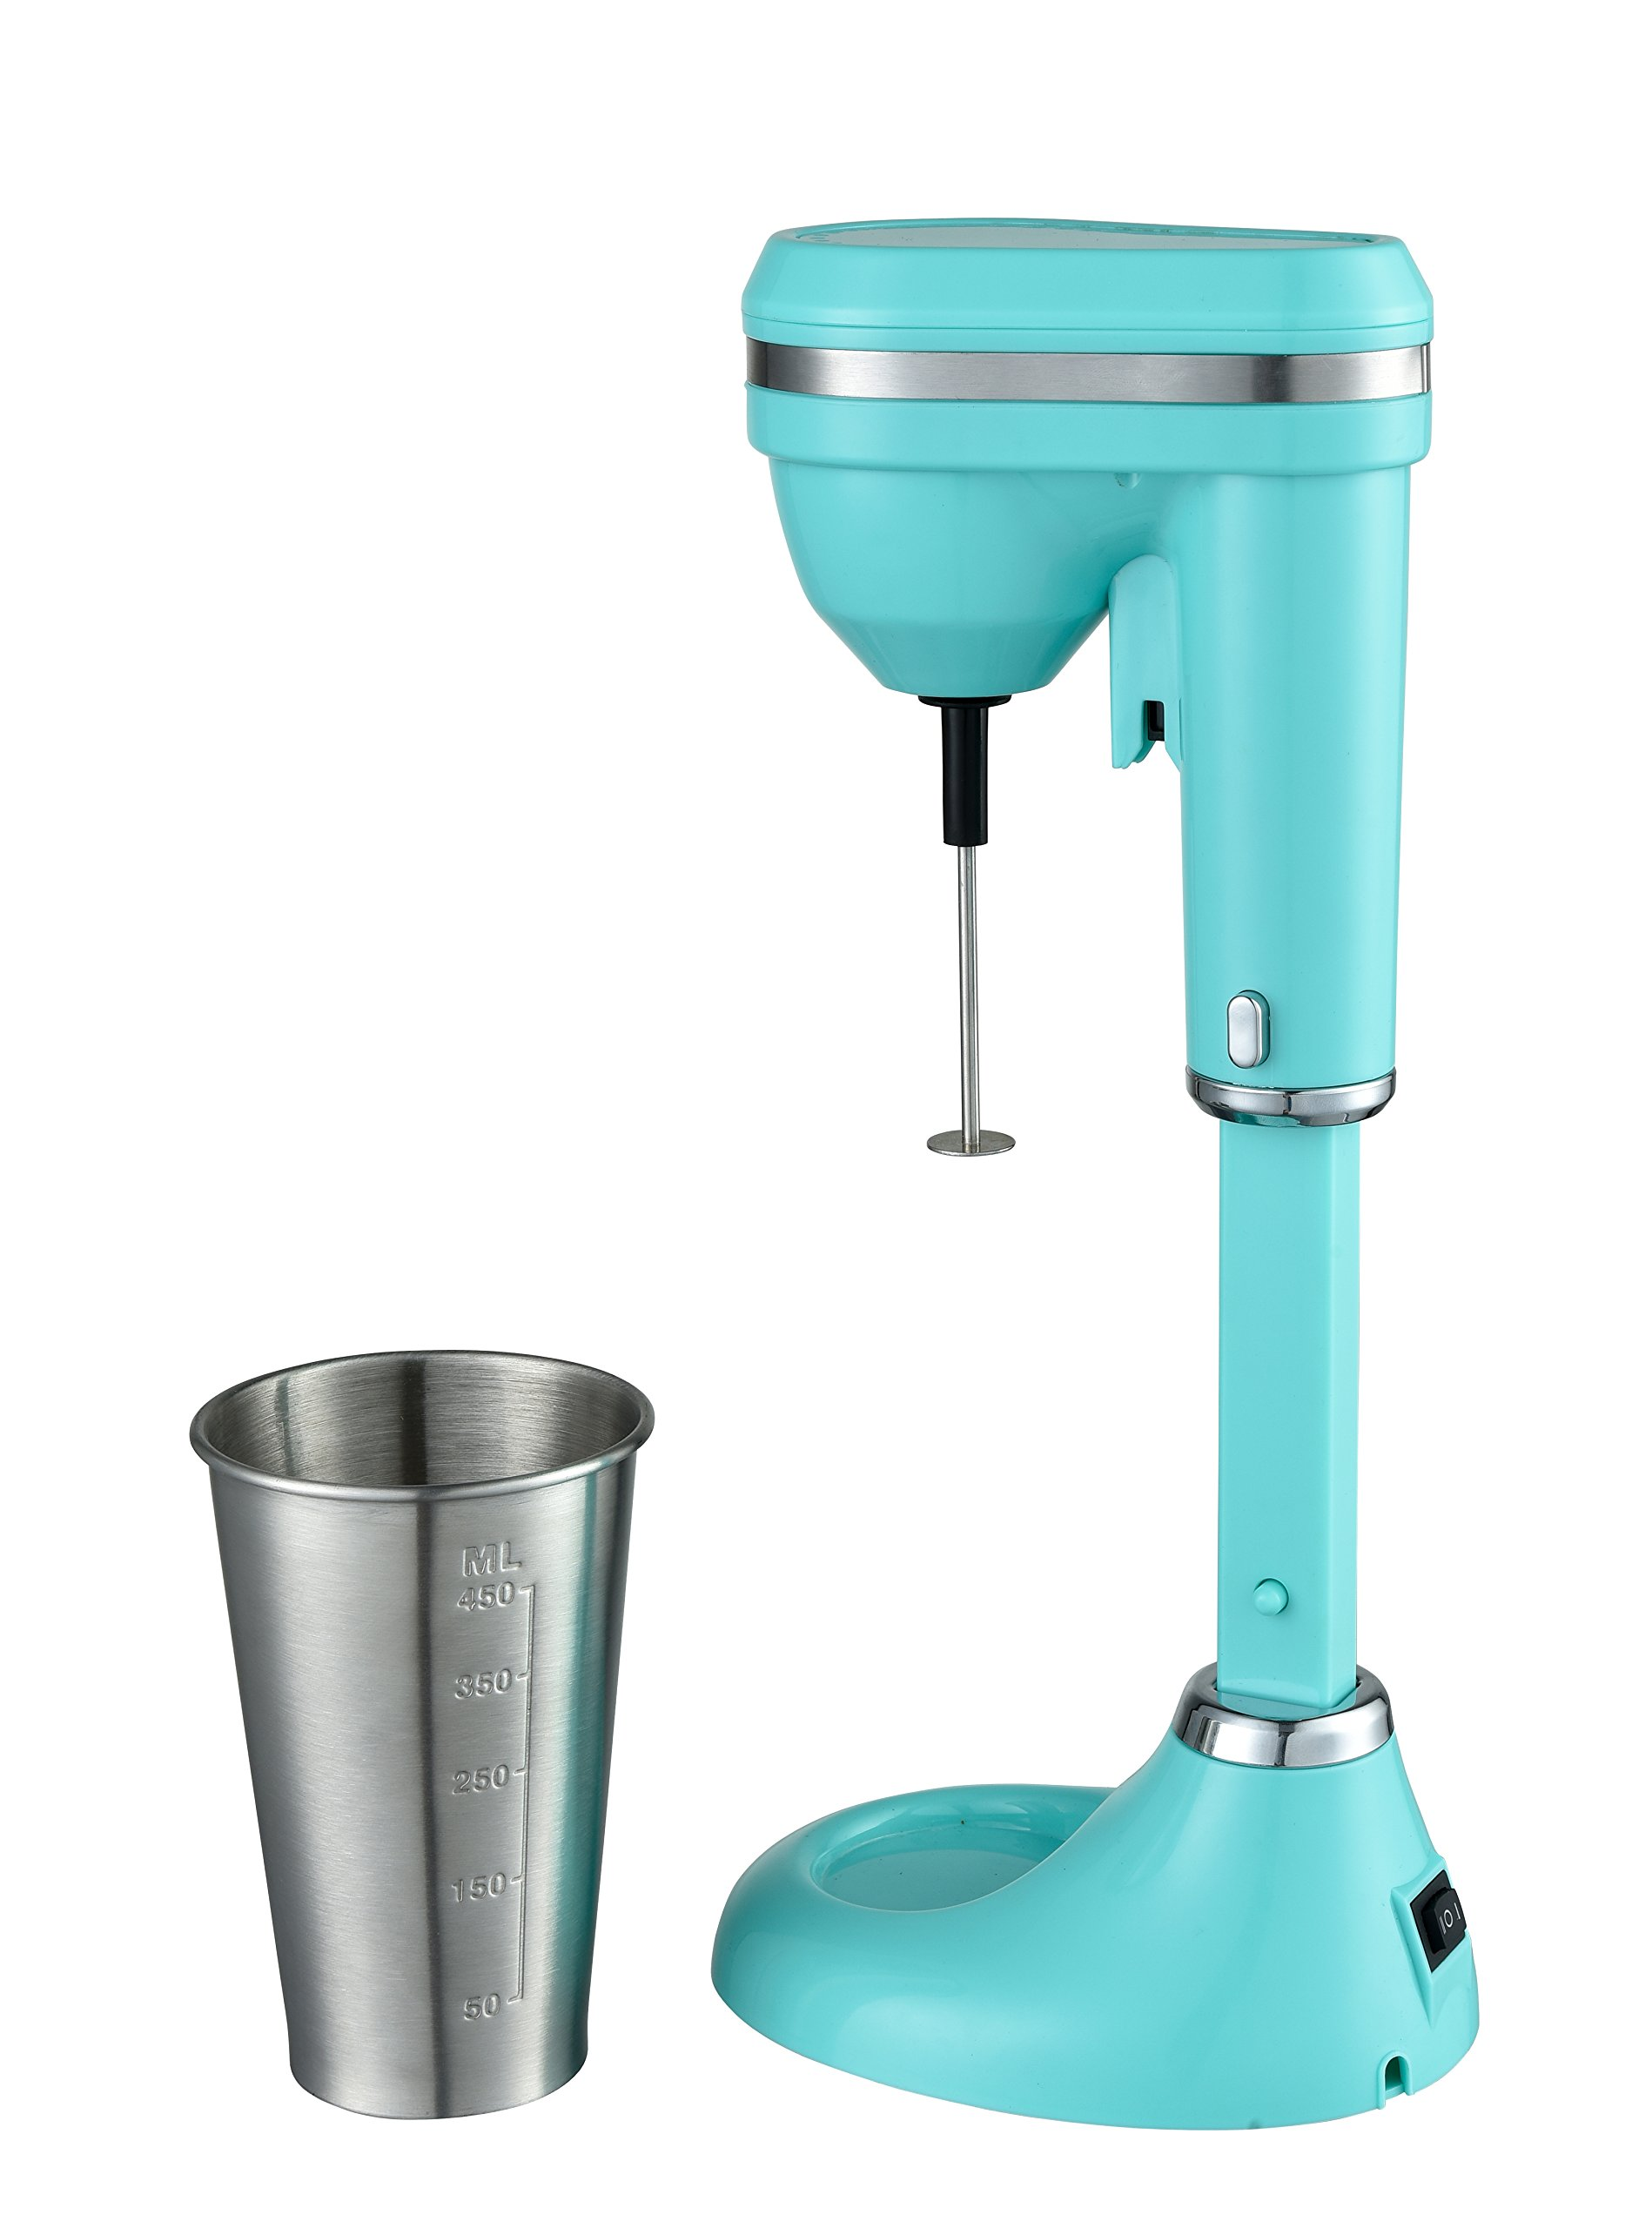 Brentwood SM-1200B Milkshake Maker, Small, Turquoise by Brentwood (Image #3)